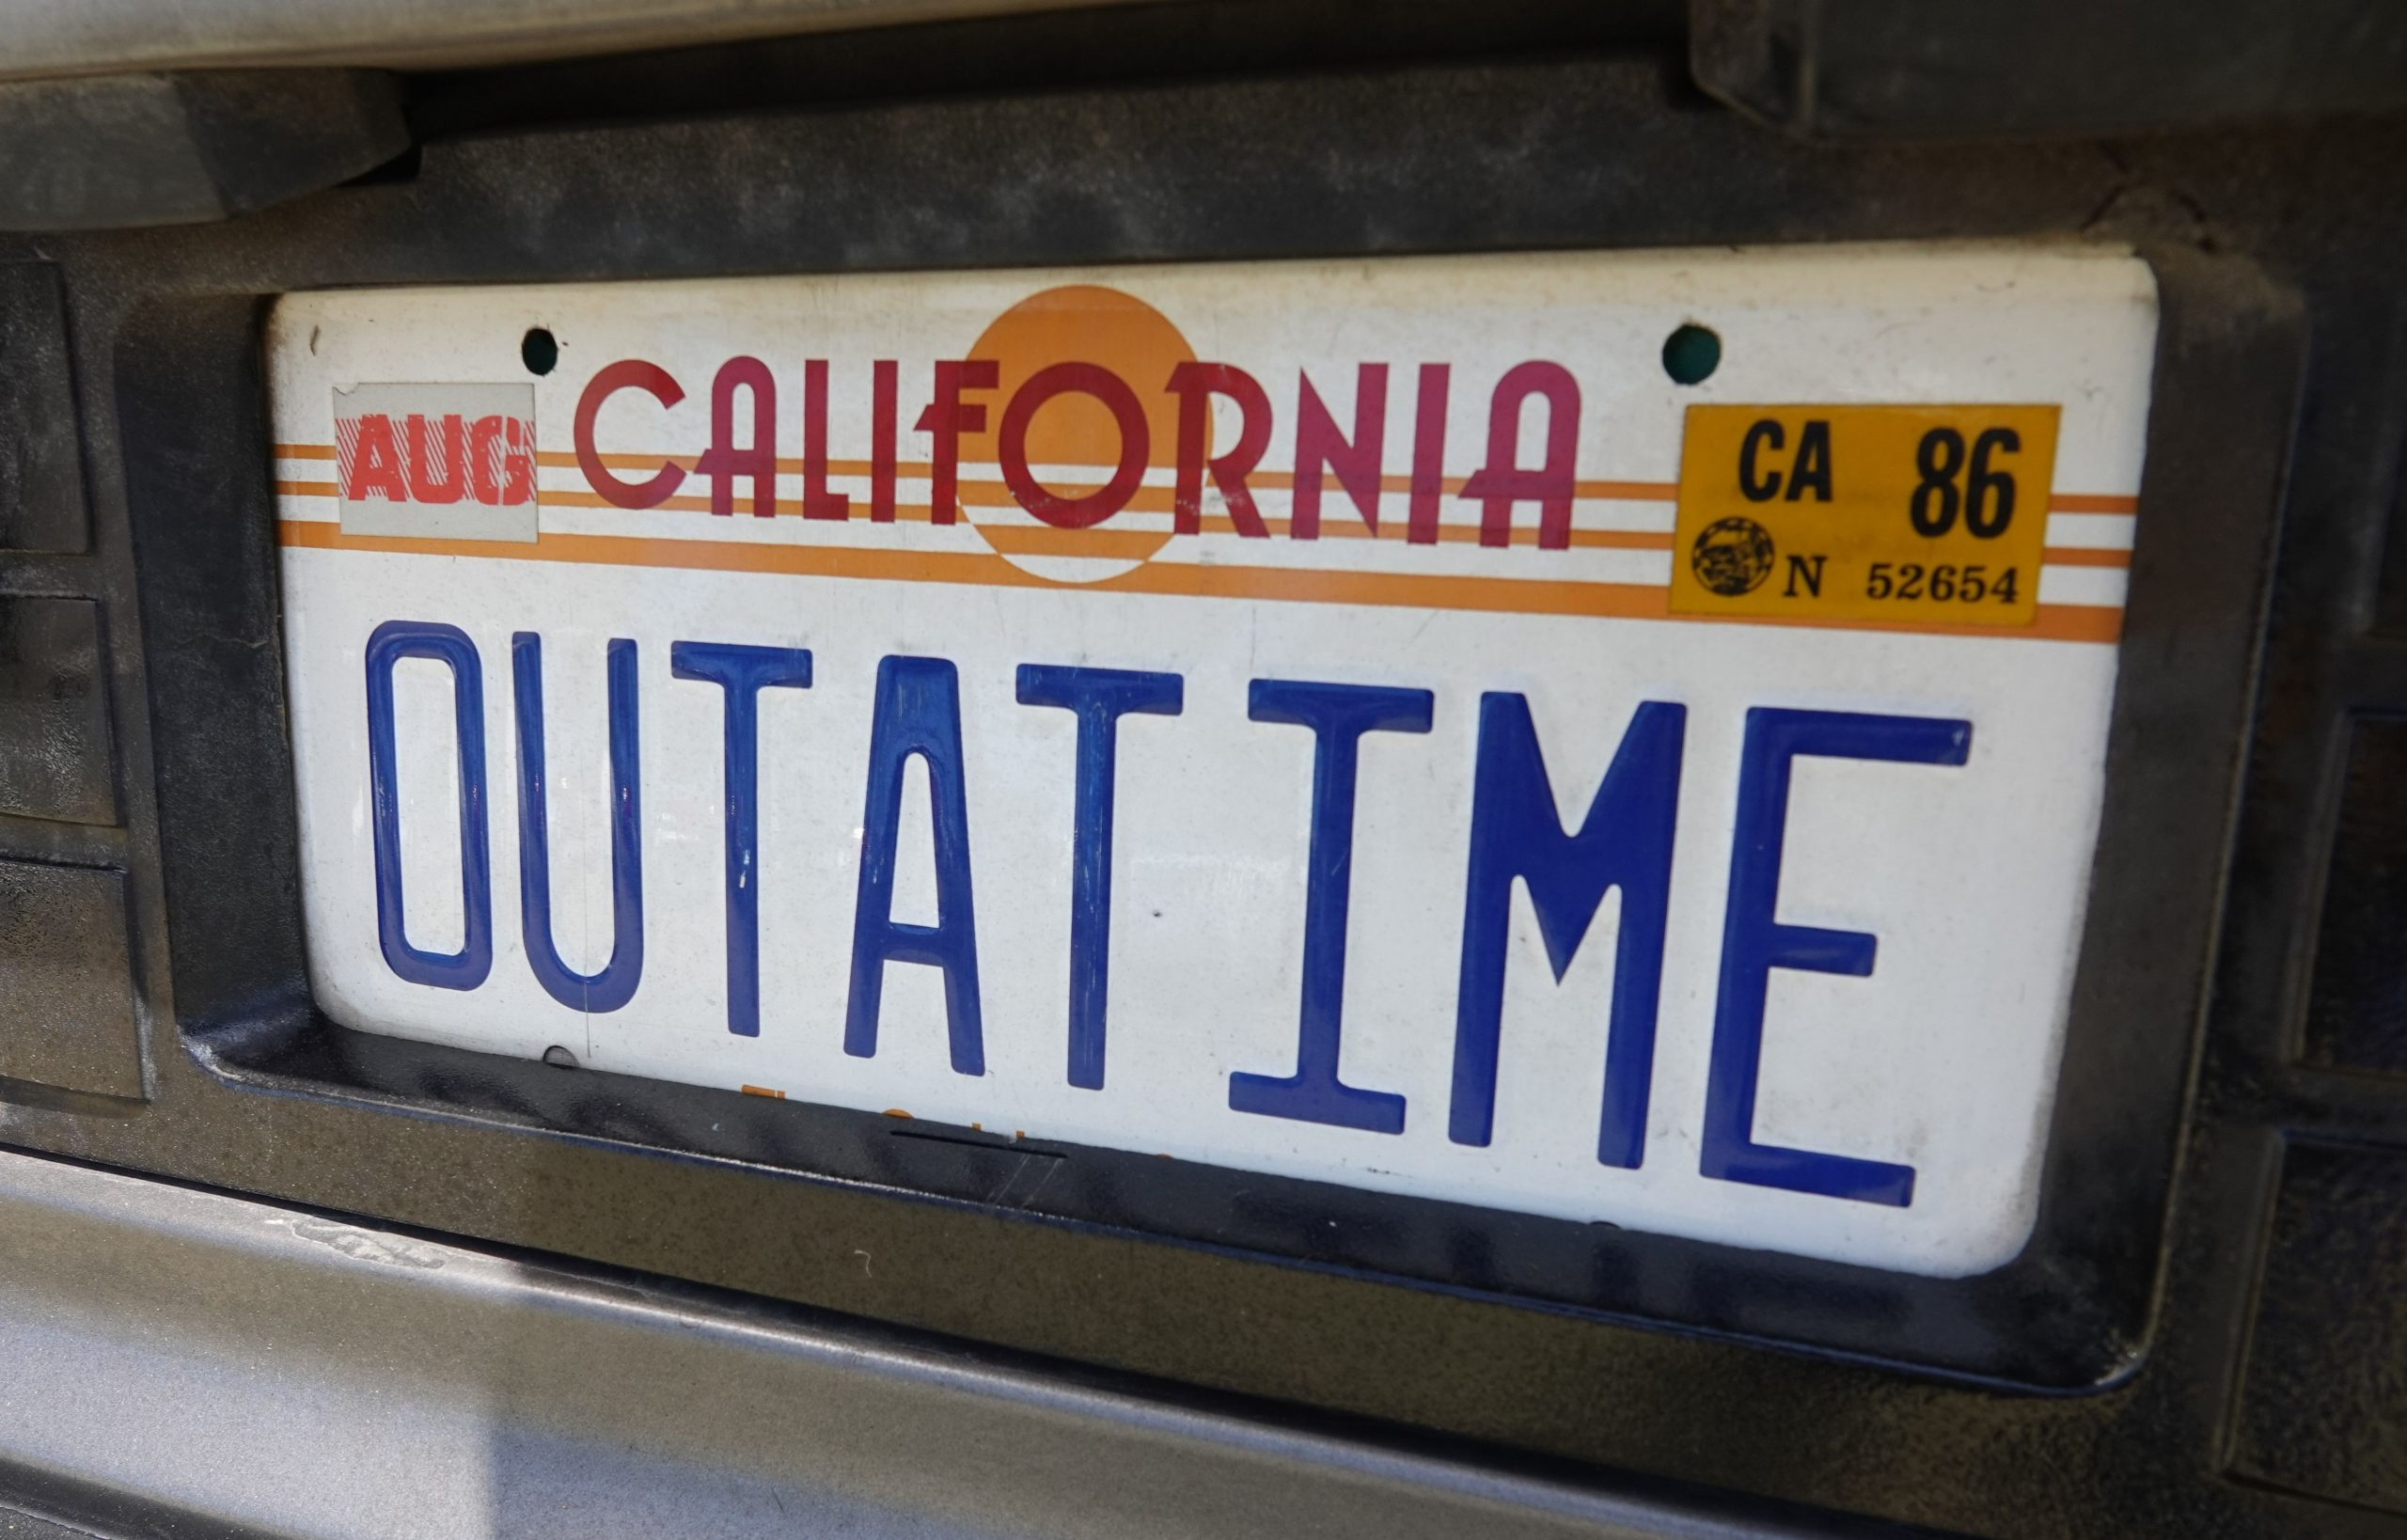 Time Machine - OUTATIME license plate